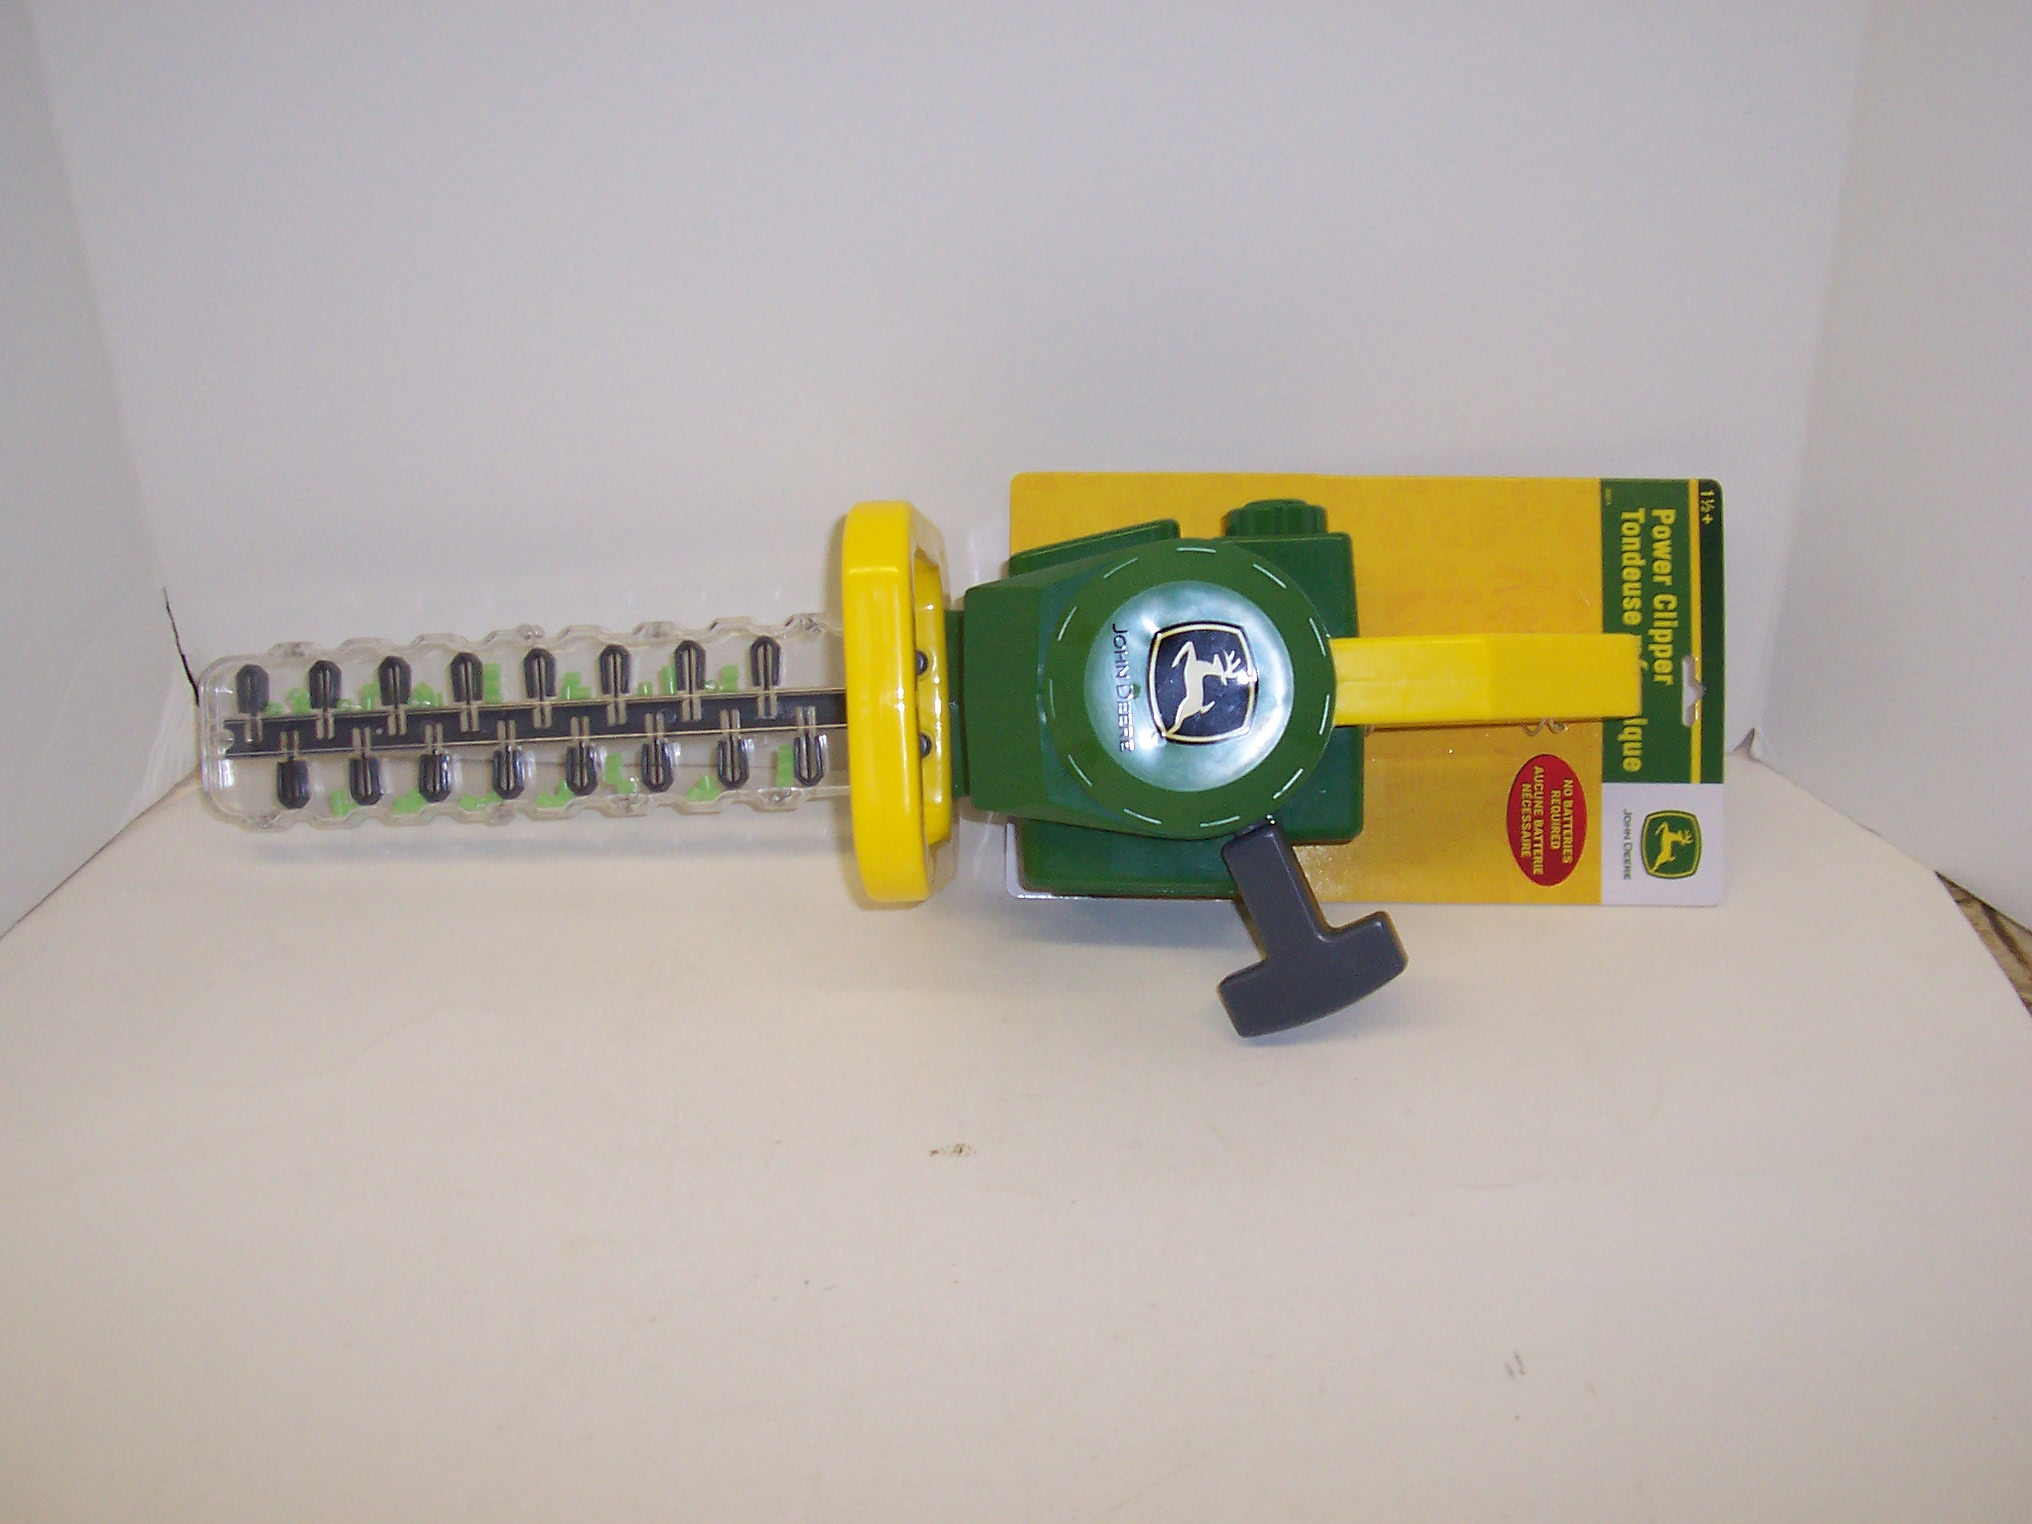 John Deere Farm Toys by Ertl and more